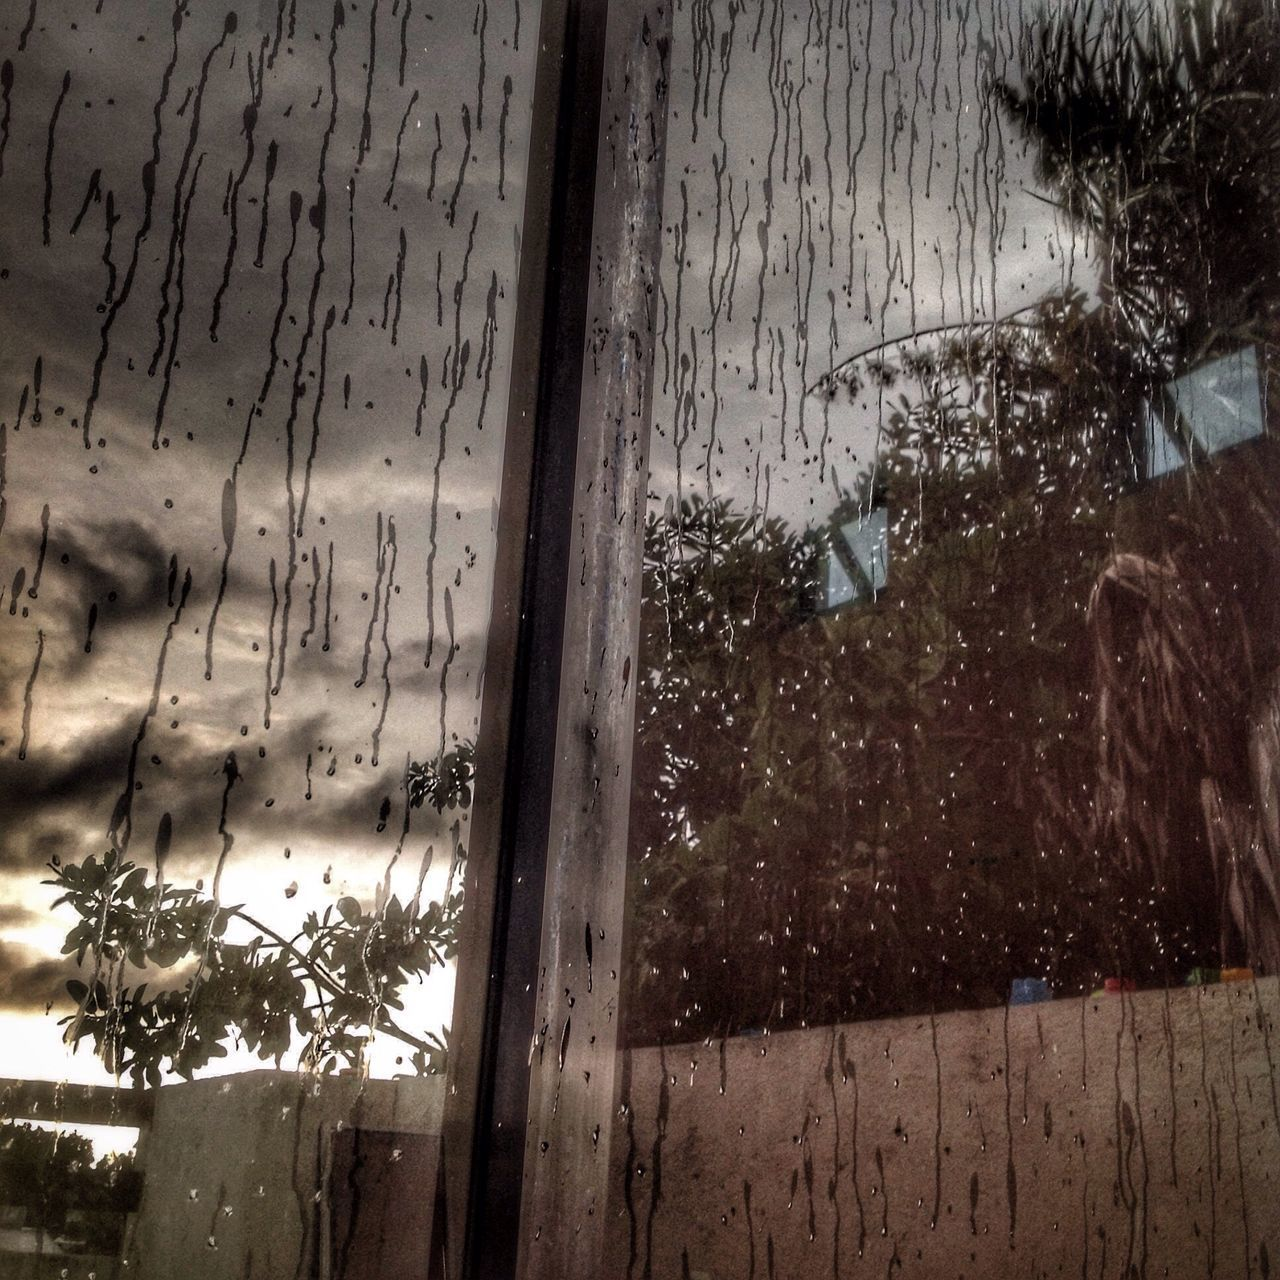 Reflection. Out with the rain... Window No People Day Outdoors Water Nature Tree Sky Close-up In And Out Mirror Morning Tree Home Interior Clouds Crystal Rain Drops Drops Of Water Drops Of Rain